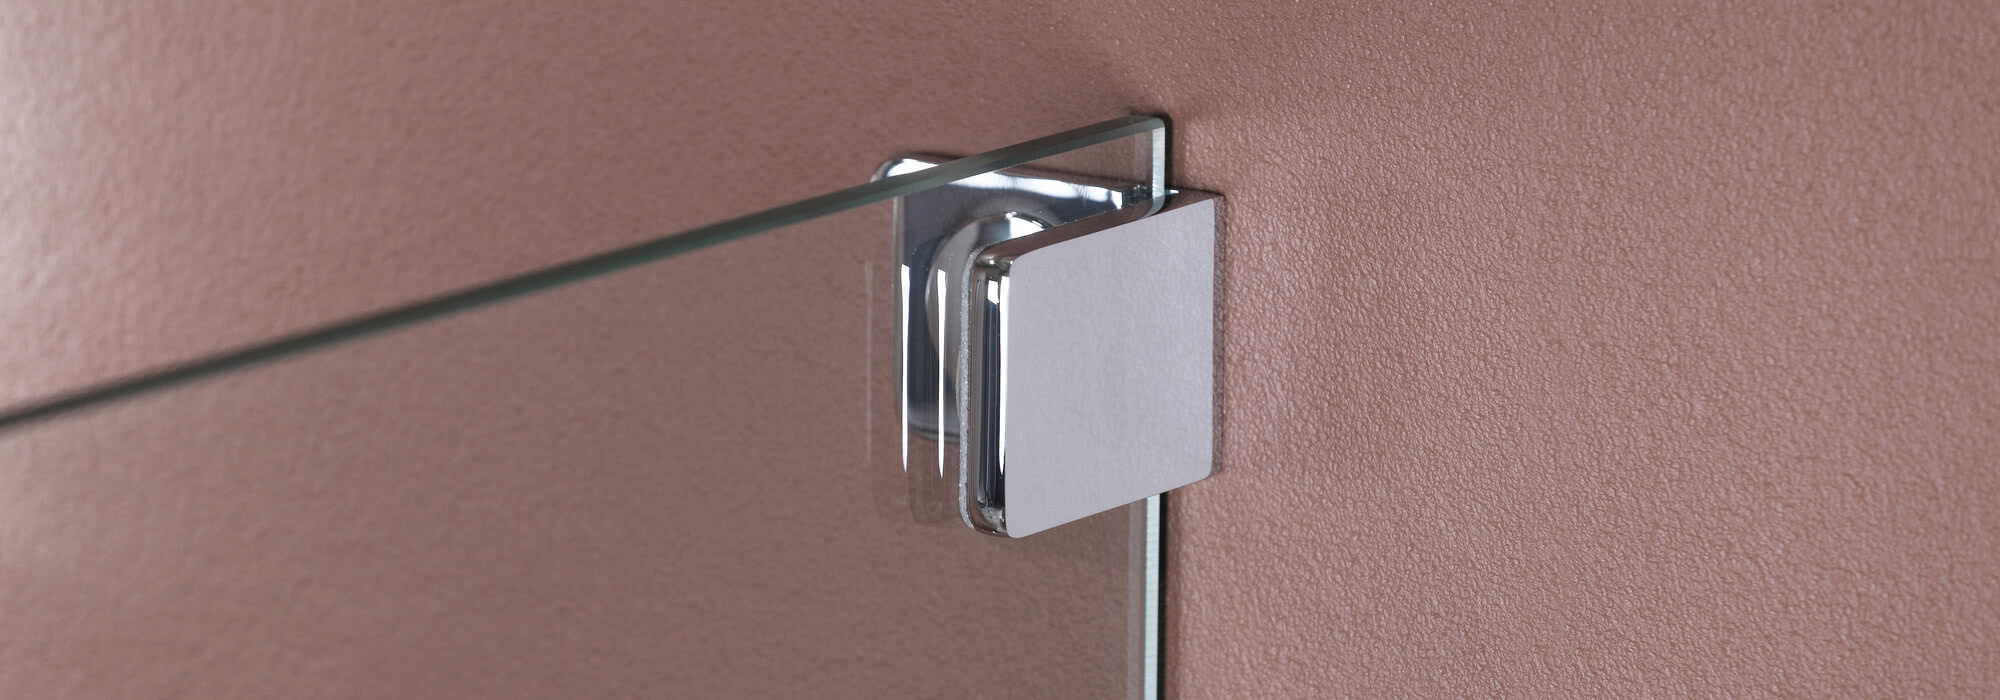 Wall bracket, exterior, for Achat R Plus shower